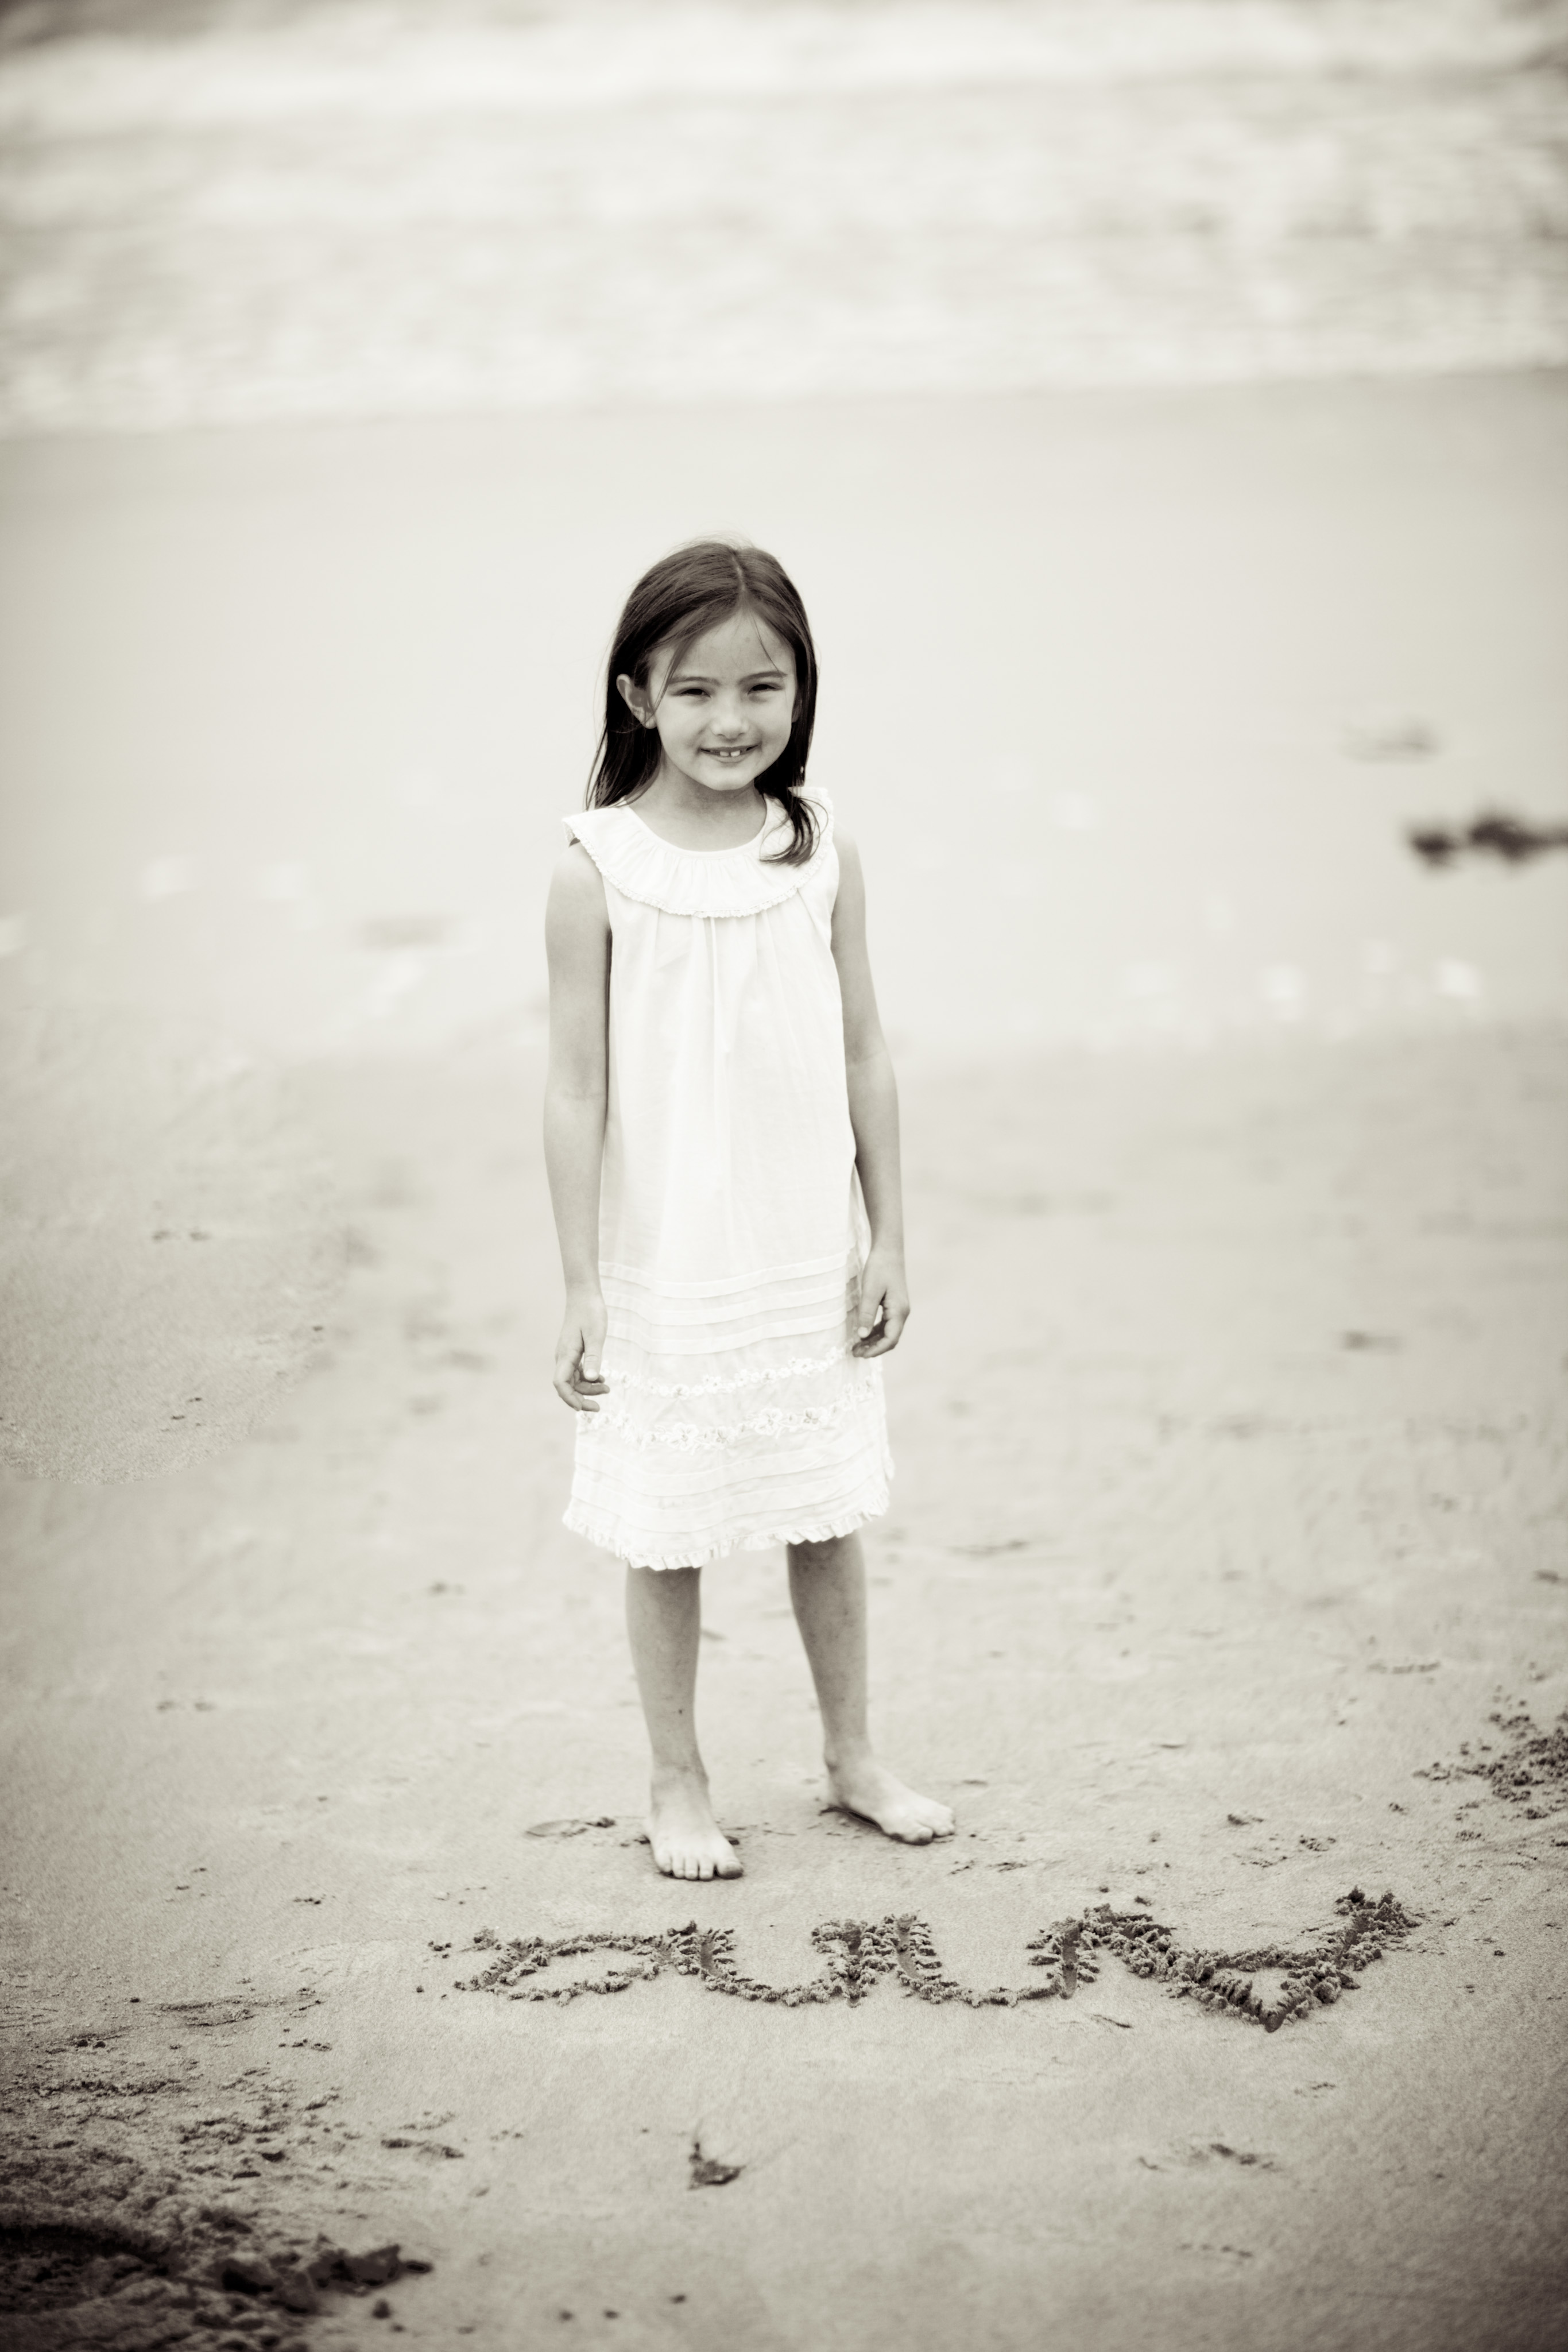 black and white picture of girl standing on the beach with her name written in the sand in front of her